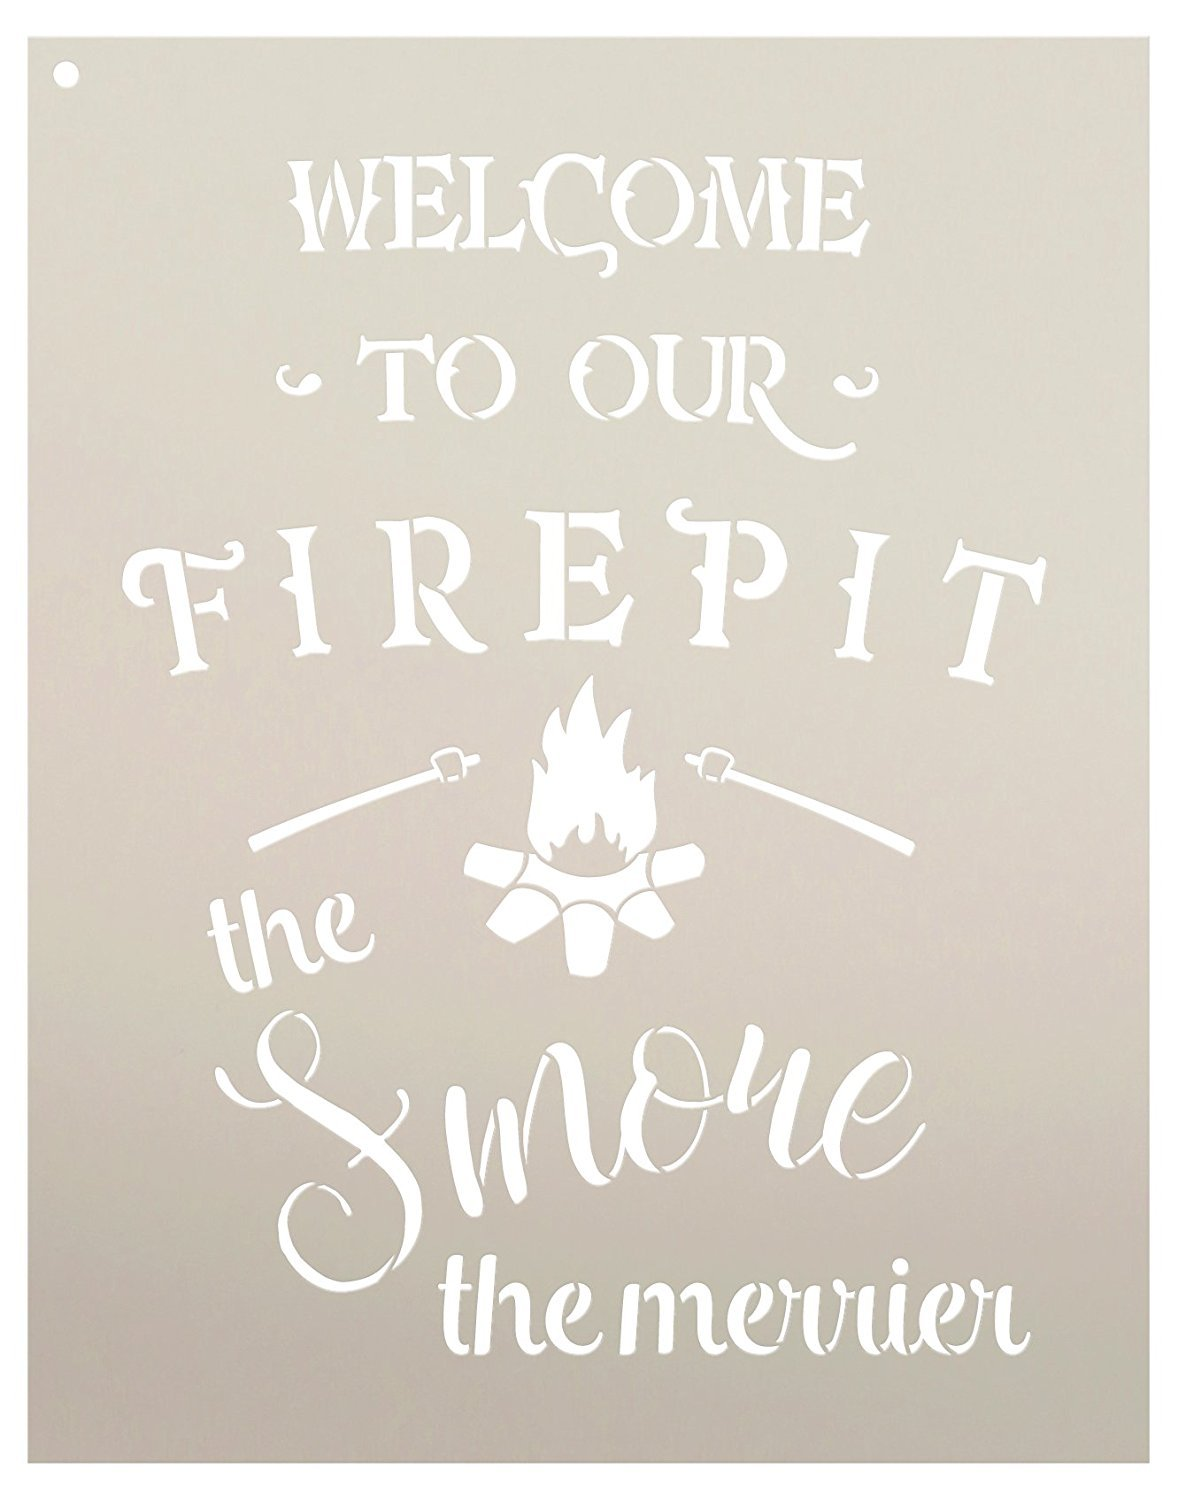 Welcome To Our Firepit Stencil - the Smore the Merrierl by StudioR12 | Reusable Mylar Template | Fall Autumn - Use to Paint Wood Signs - Wall Art - Pallets - DIY Rustic Home Decor - SELECT SIZE